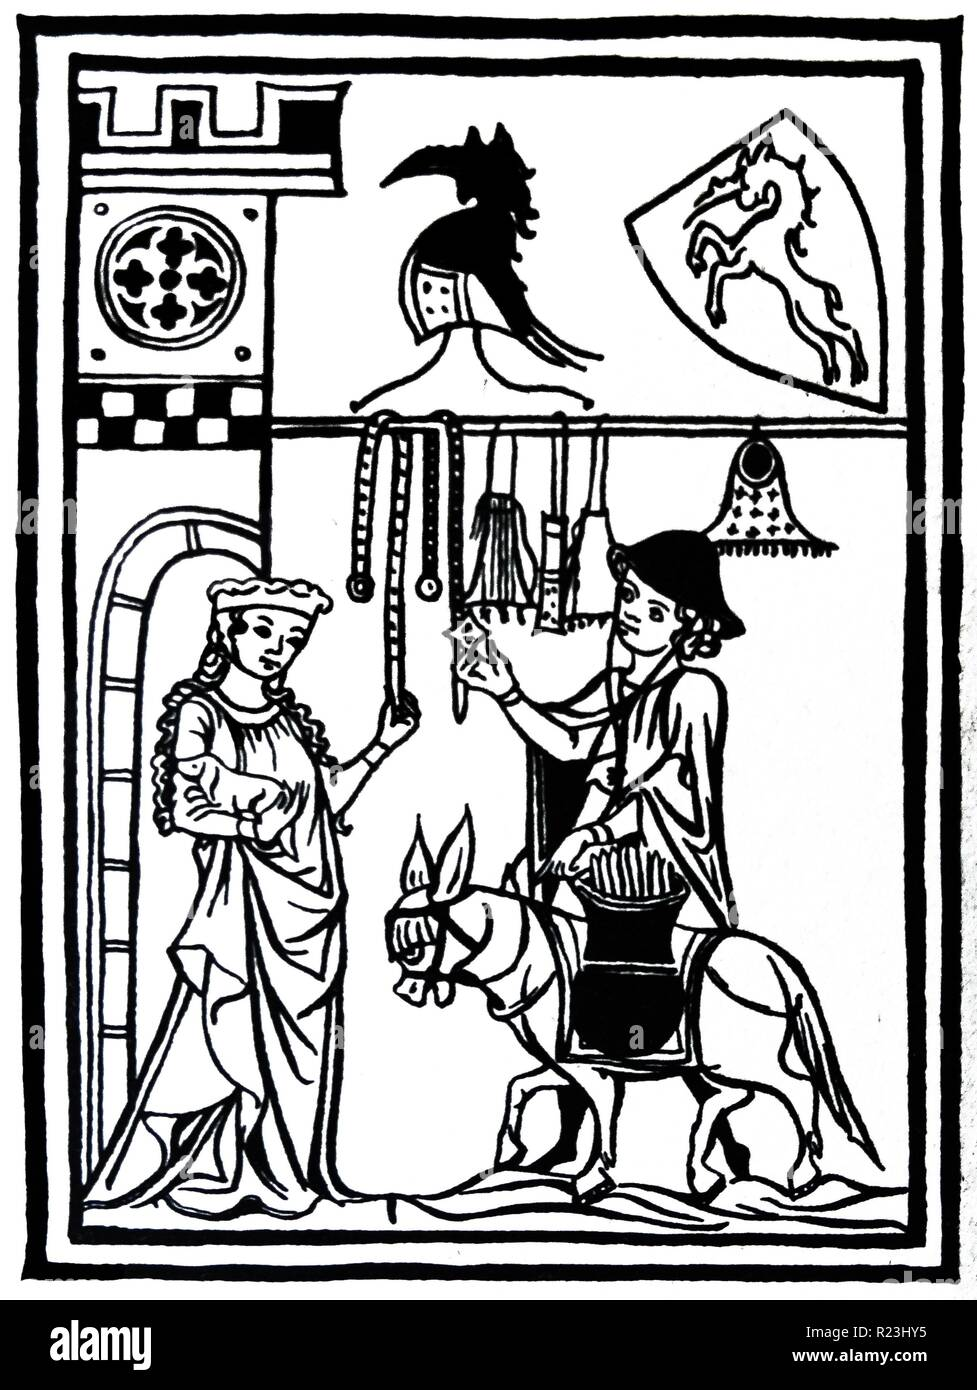 Woodcut of a travelling pedlar displaying his wares to the lady of the castle. She is depicted carrying a small dog whilst admiring the merchandise. Dated 14th Century - Stock Image